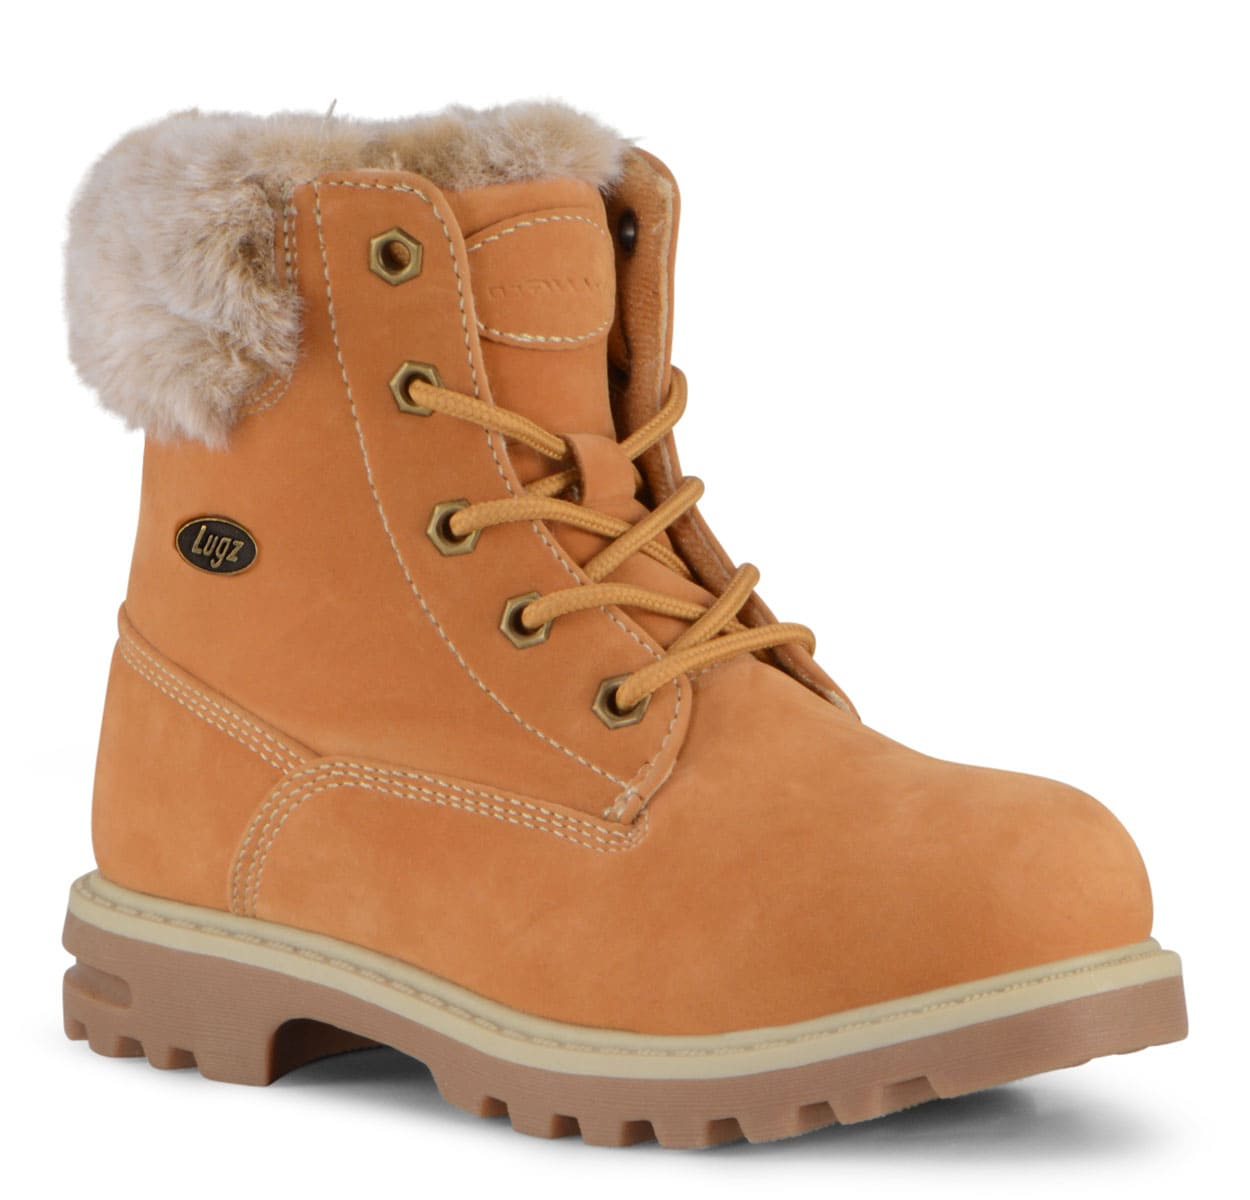 Preschool Empire Hi Fur 6-Inch Boot (Choose Your Color: Golden Wheat/Cream/Gum, Choose Your Size: 1.0)